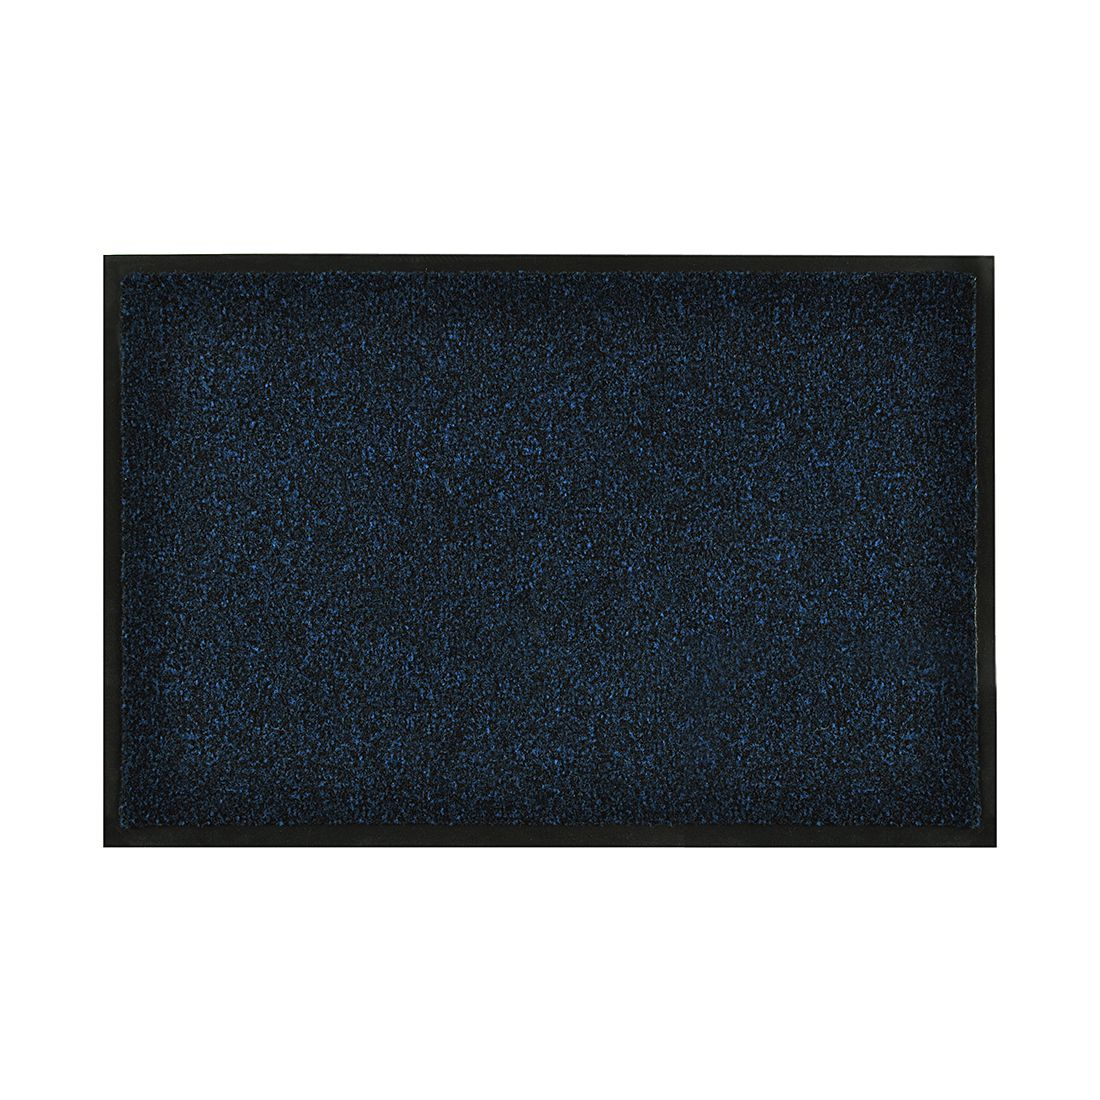 Image of Zerbino Green e Clean - Blu & 40 x 60 cm, Hanse Home Collection